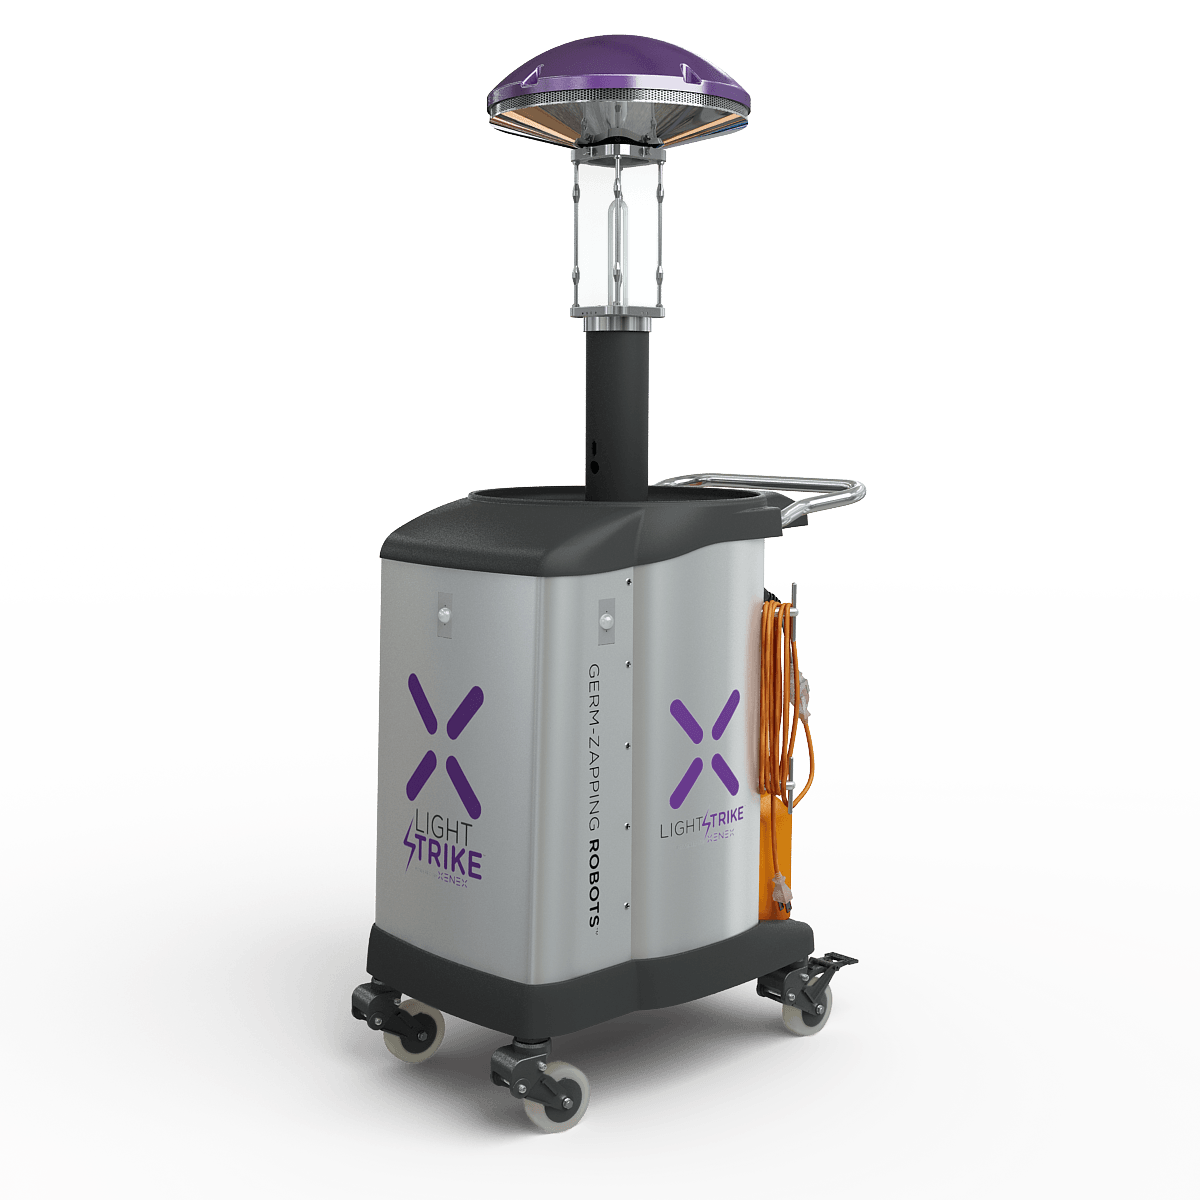 Xenex Disinfection Services Leader In Uv Disinfection For Healthcare Facilities Launches Strikefor Covid Innovations